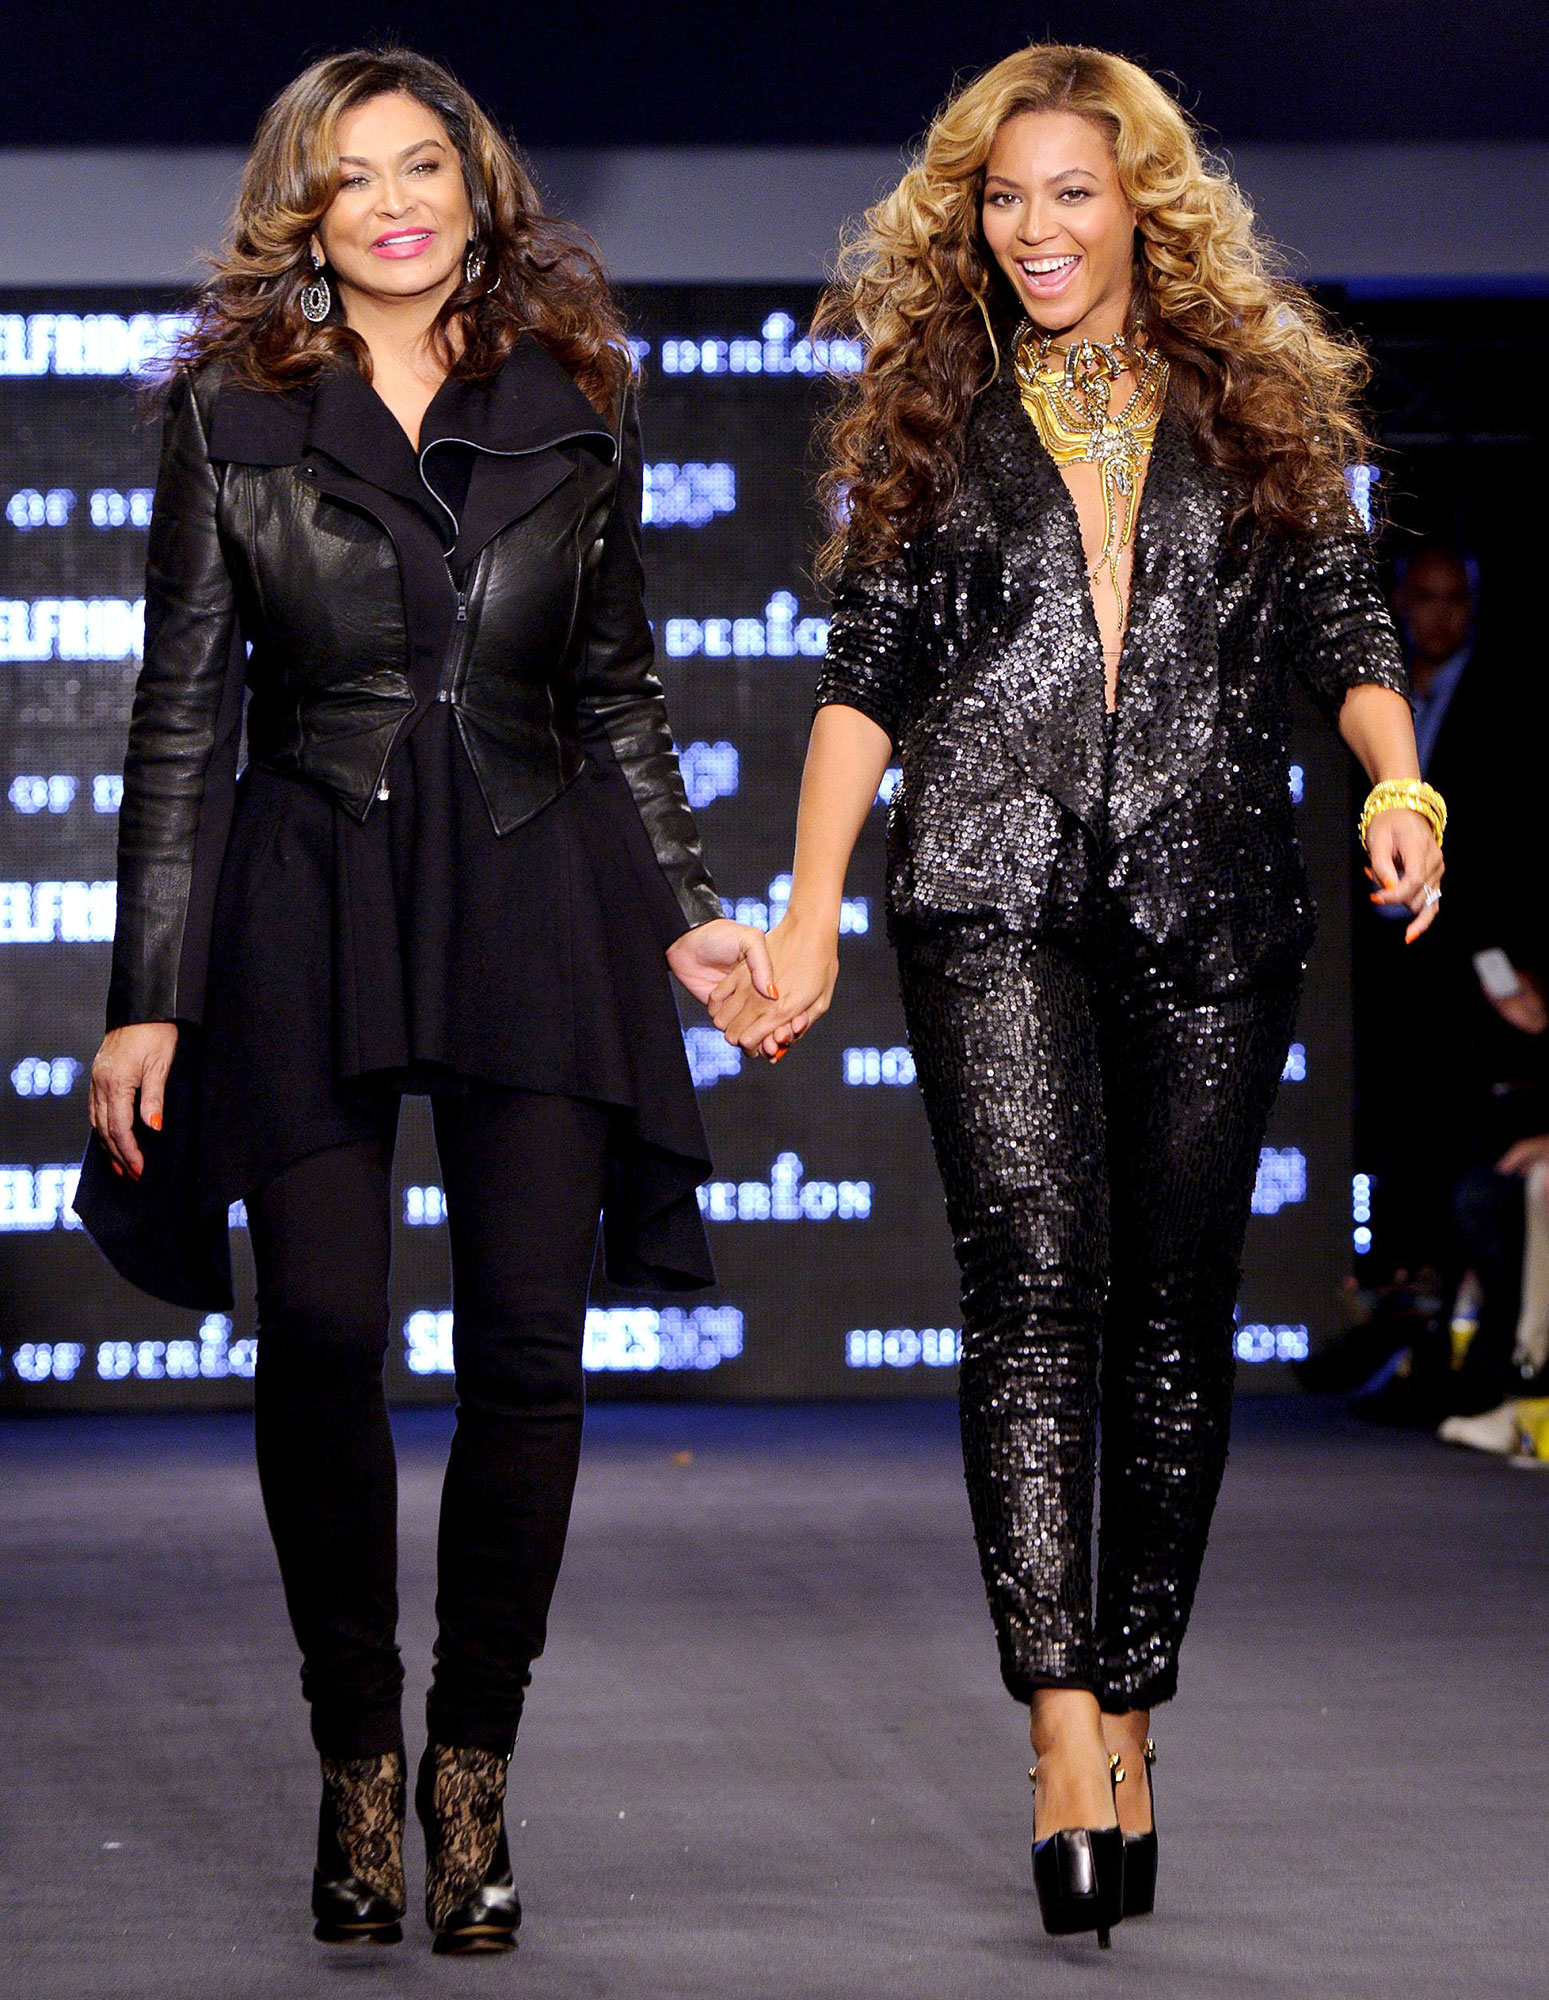 tina-knowles-lawson-speaks-about-beyonces-salute-to-her-on-savage-remix